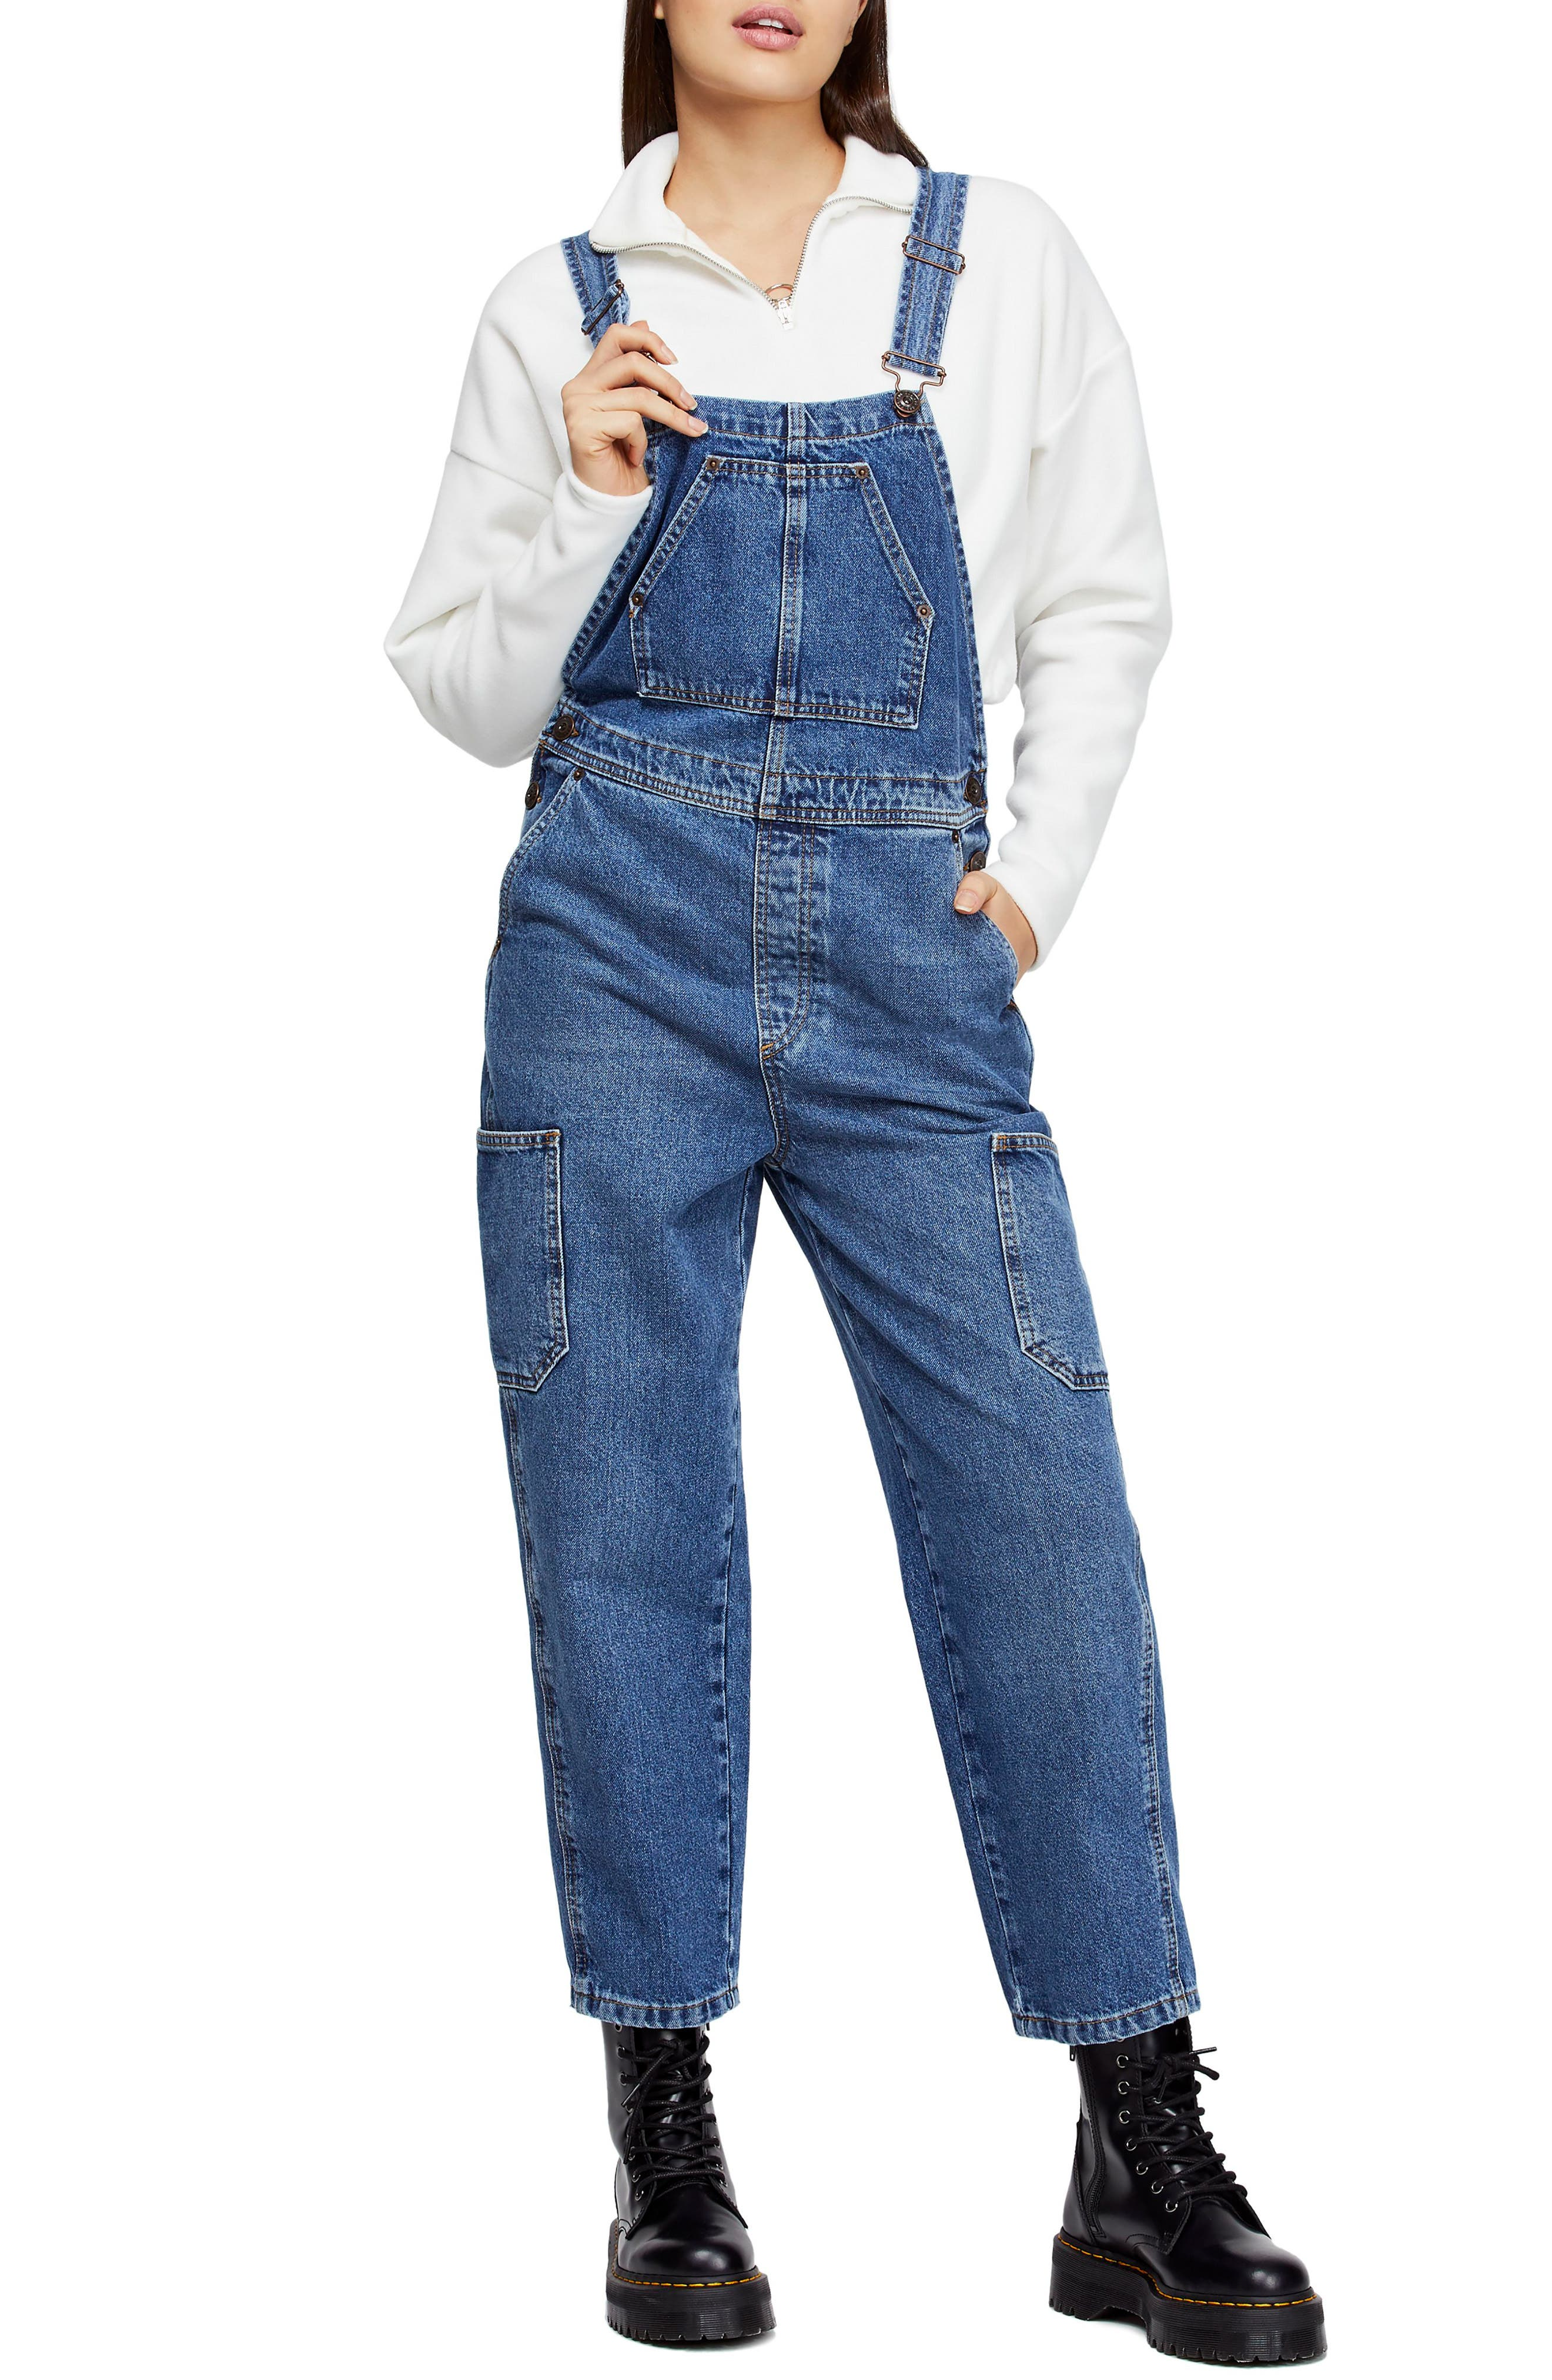 Urban Outfitters Workwear Denim Overalls,                             Main thumbnail 1, color,                             DENIM BLUE